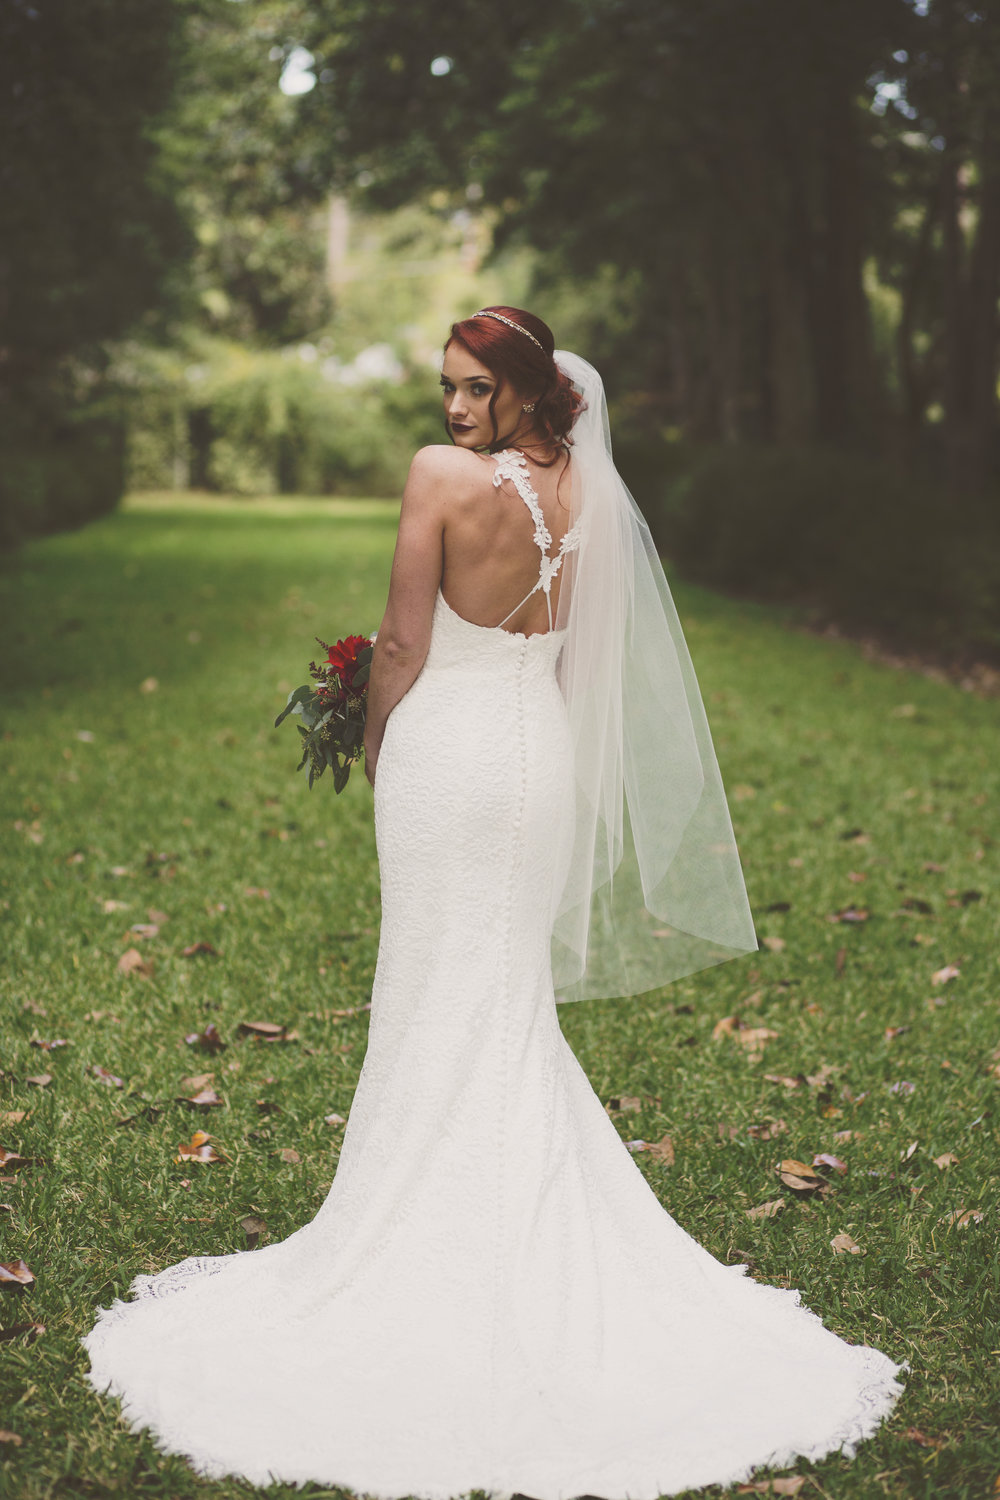 ivory-and-beau-bridal-boutique-courtney-hyatt-photography-hart-to-hart-photography-ti-adora-wedding-gown-ti-adora-7651-7.jpg